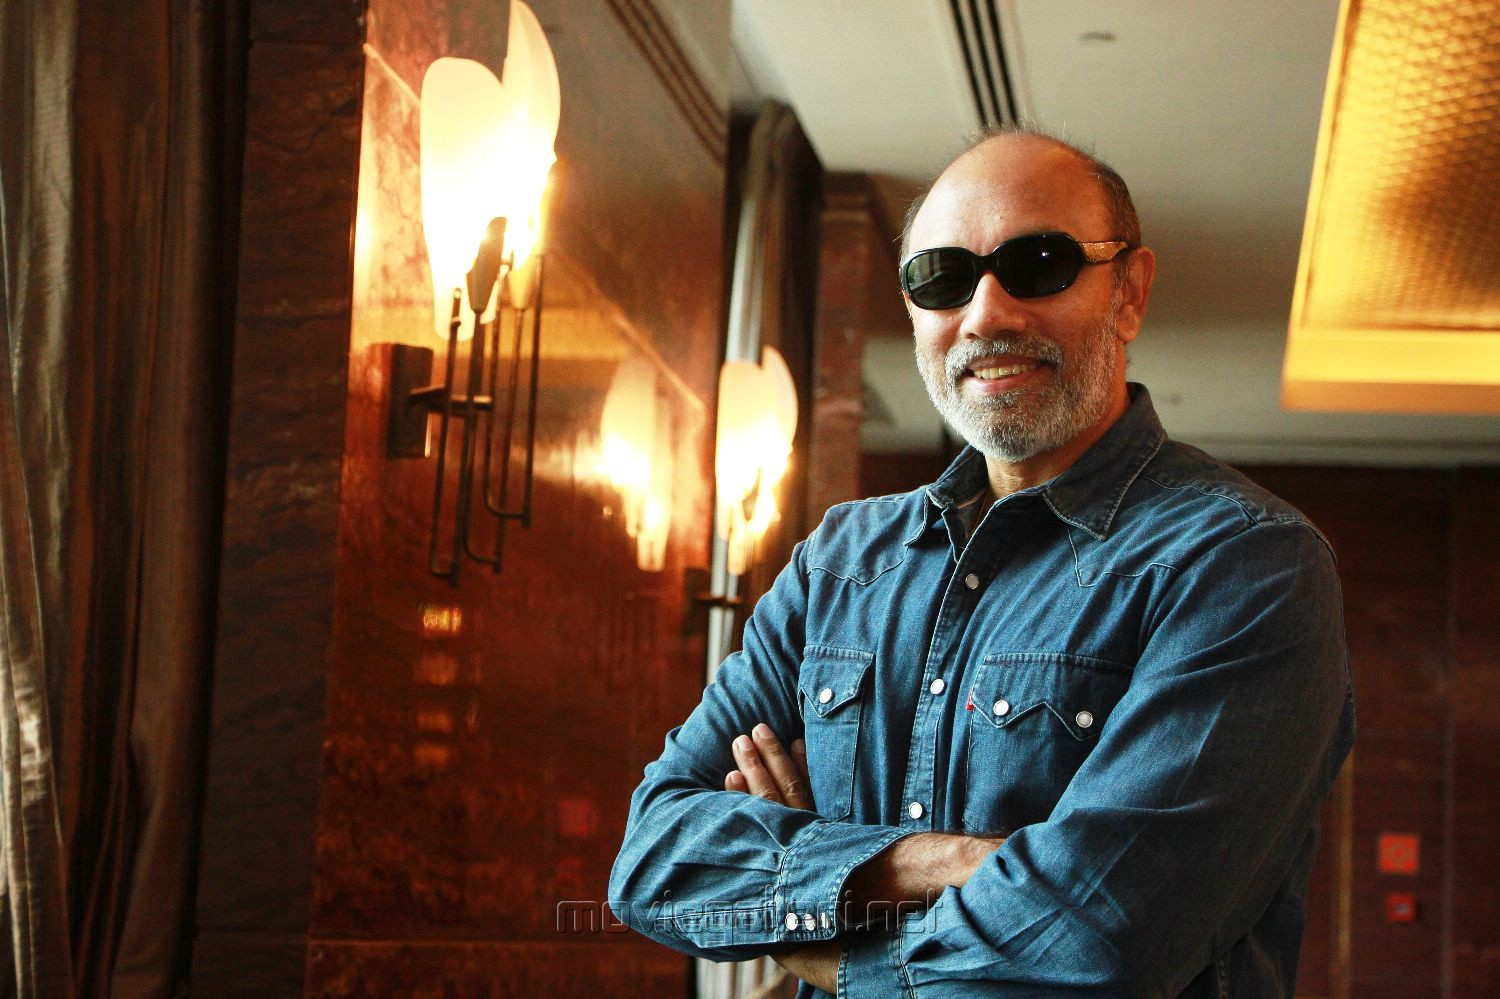 sathyaraj in chennai expresssathyaraj movies, sathyaraj meaning, sathyaraj meena movies, sathyaraj movie list, sathyaraj top 10 movies, sathyaraj hits, sathyaraj daughter, sathyaraj in bahubali, sathyaraj actor, sathyaraj son, sathyaraj height, sathyaraj family, sathyaraj movies full tamil, sathyaraj hits starmusiq, sathyaraj in chennai express, sathyaraj bgm in poojai, sathyaraj theme music in poojai, sathyaraj wiki, sathyaraj movies free download, sathyaraj tamil movie